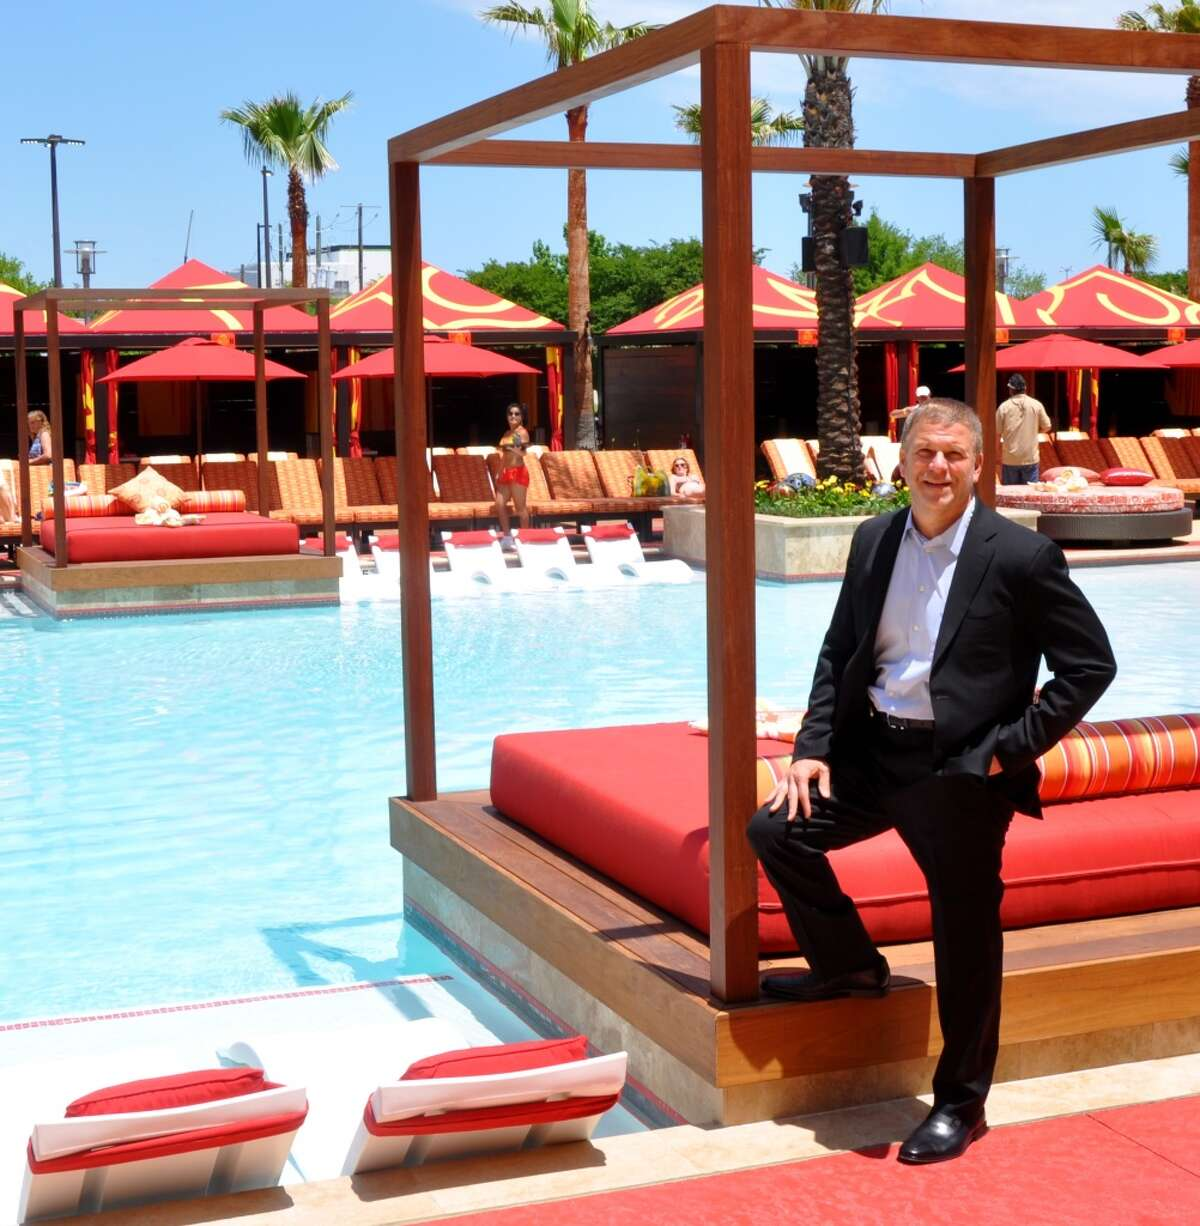 Tilman Fertitta helped design the palatial pool at Golden Nugget Biloxi. (Melissa Aguilar photos)